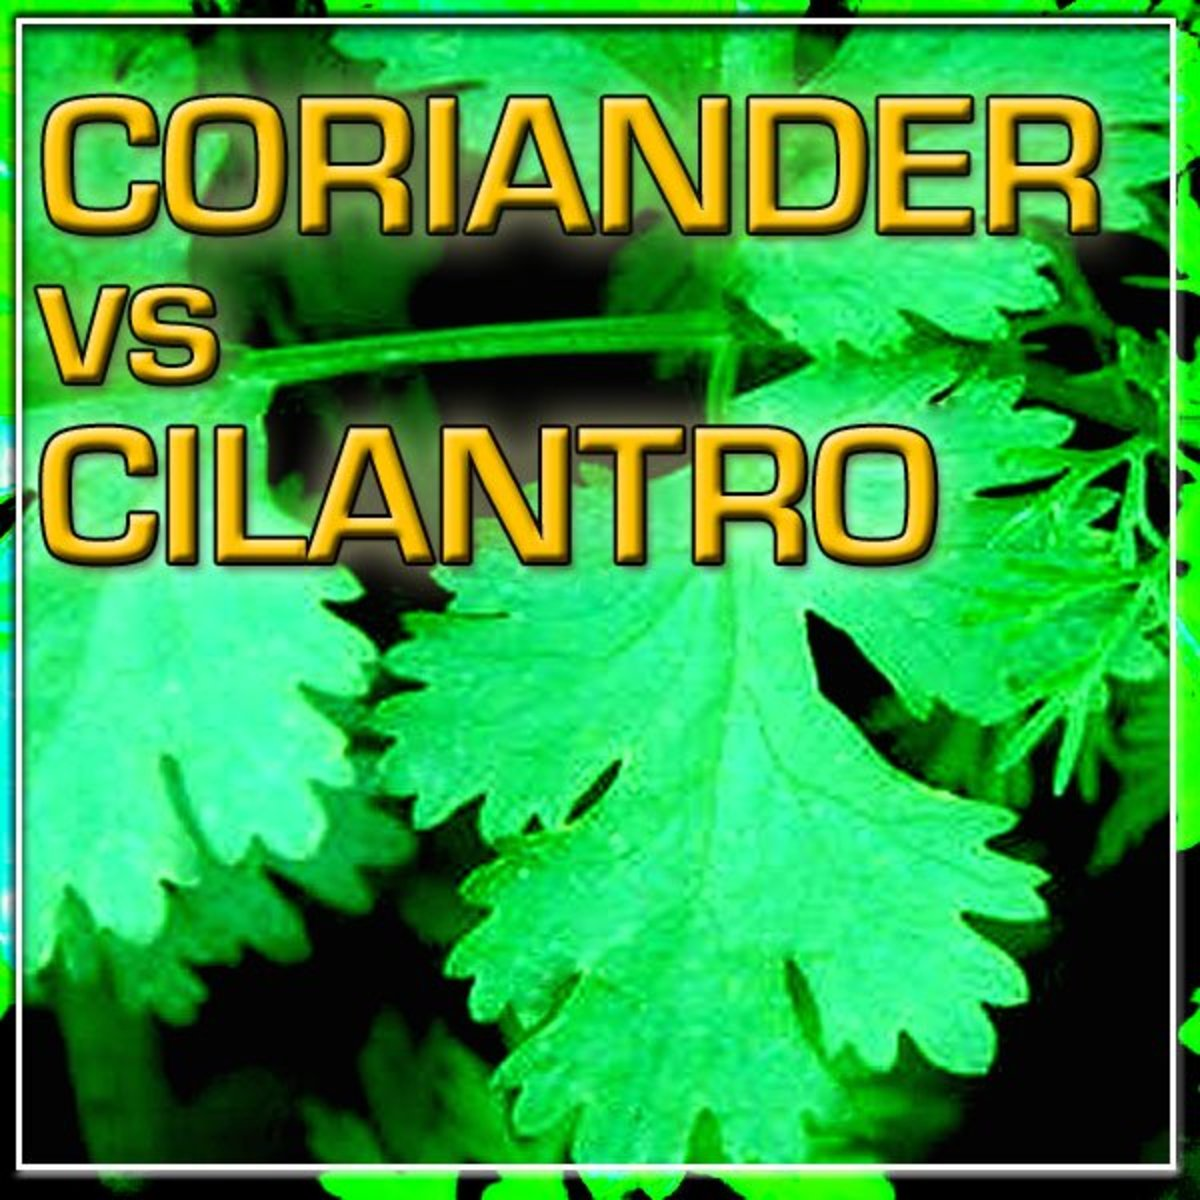 Are Coriander and Cilantro the Same Thing